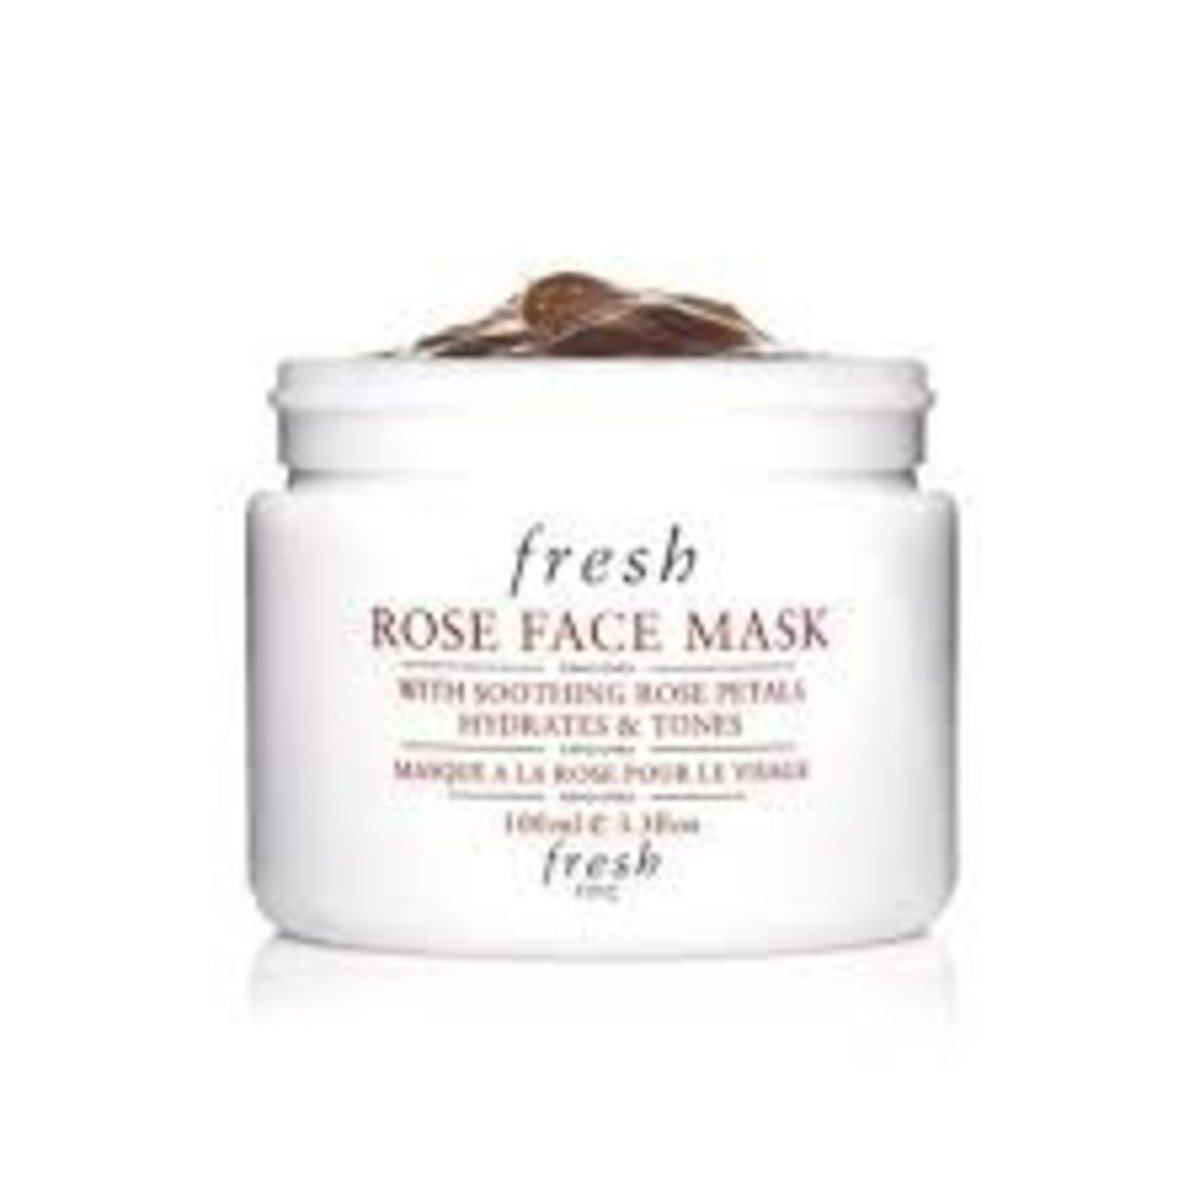 Rose Face Mask 100ml (Parallel Import)